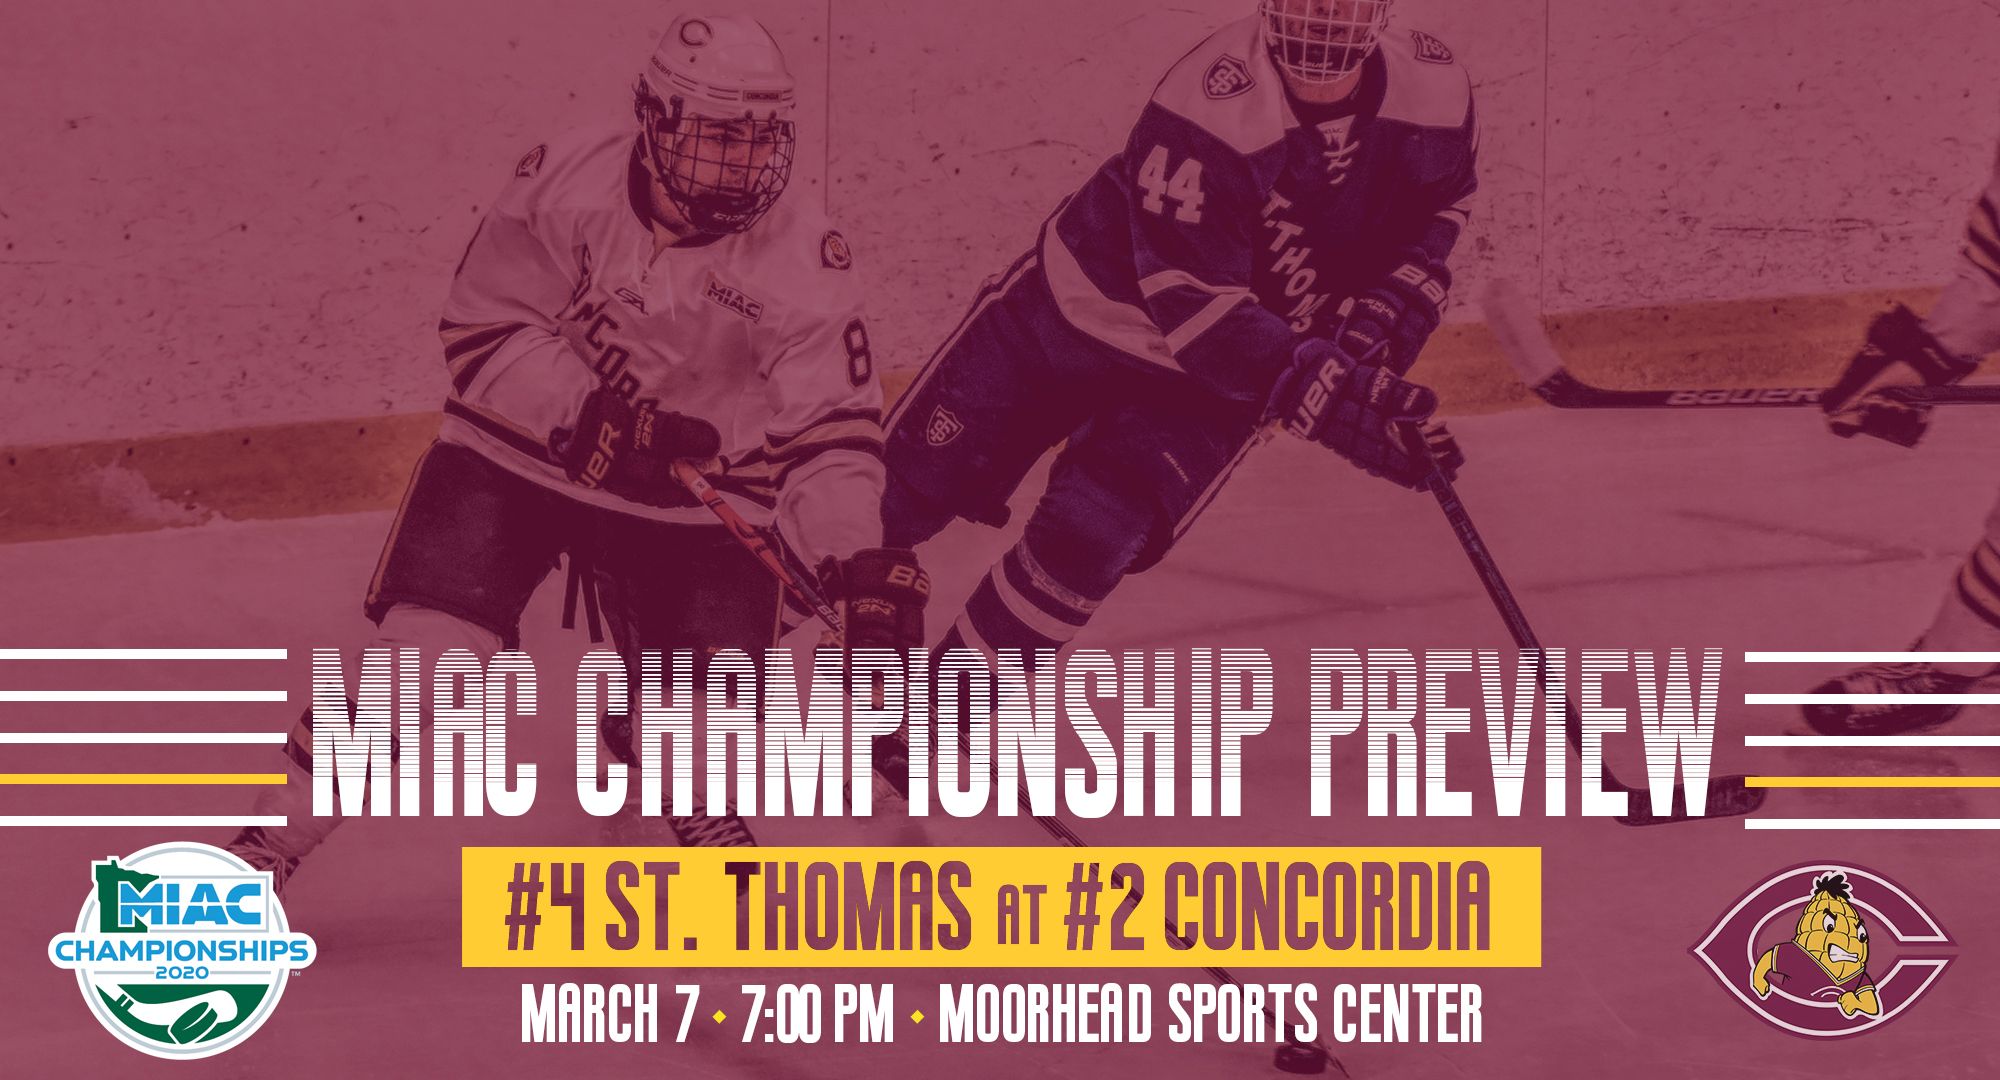 Concordia will host the MIAC Championship Game for the first time since 1987 when they play St. Thomas on Saturday, Mar. 7 at 7:00.